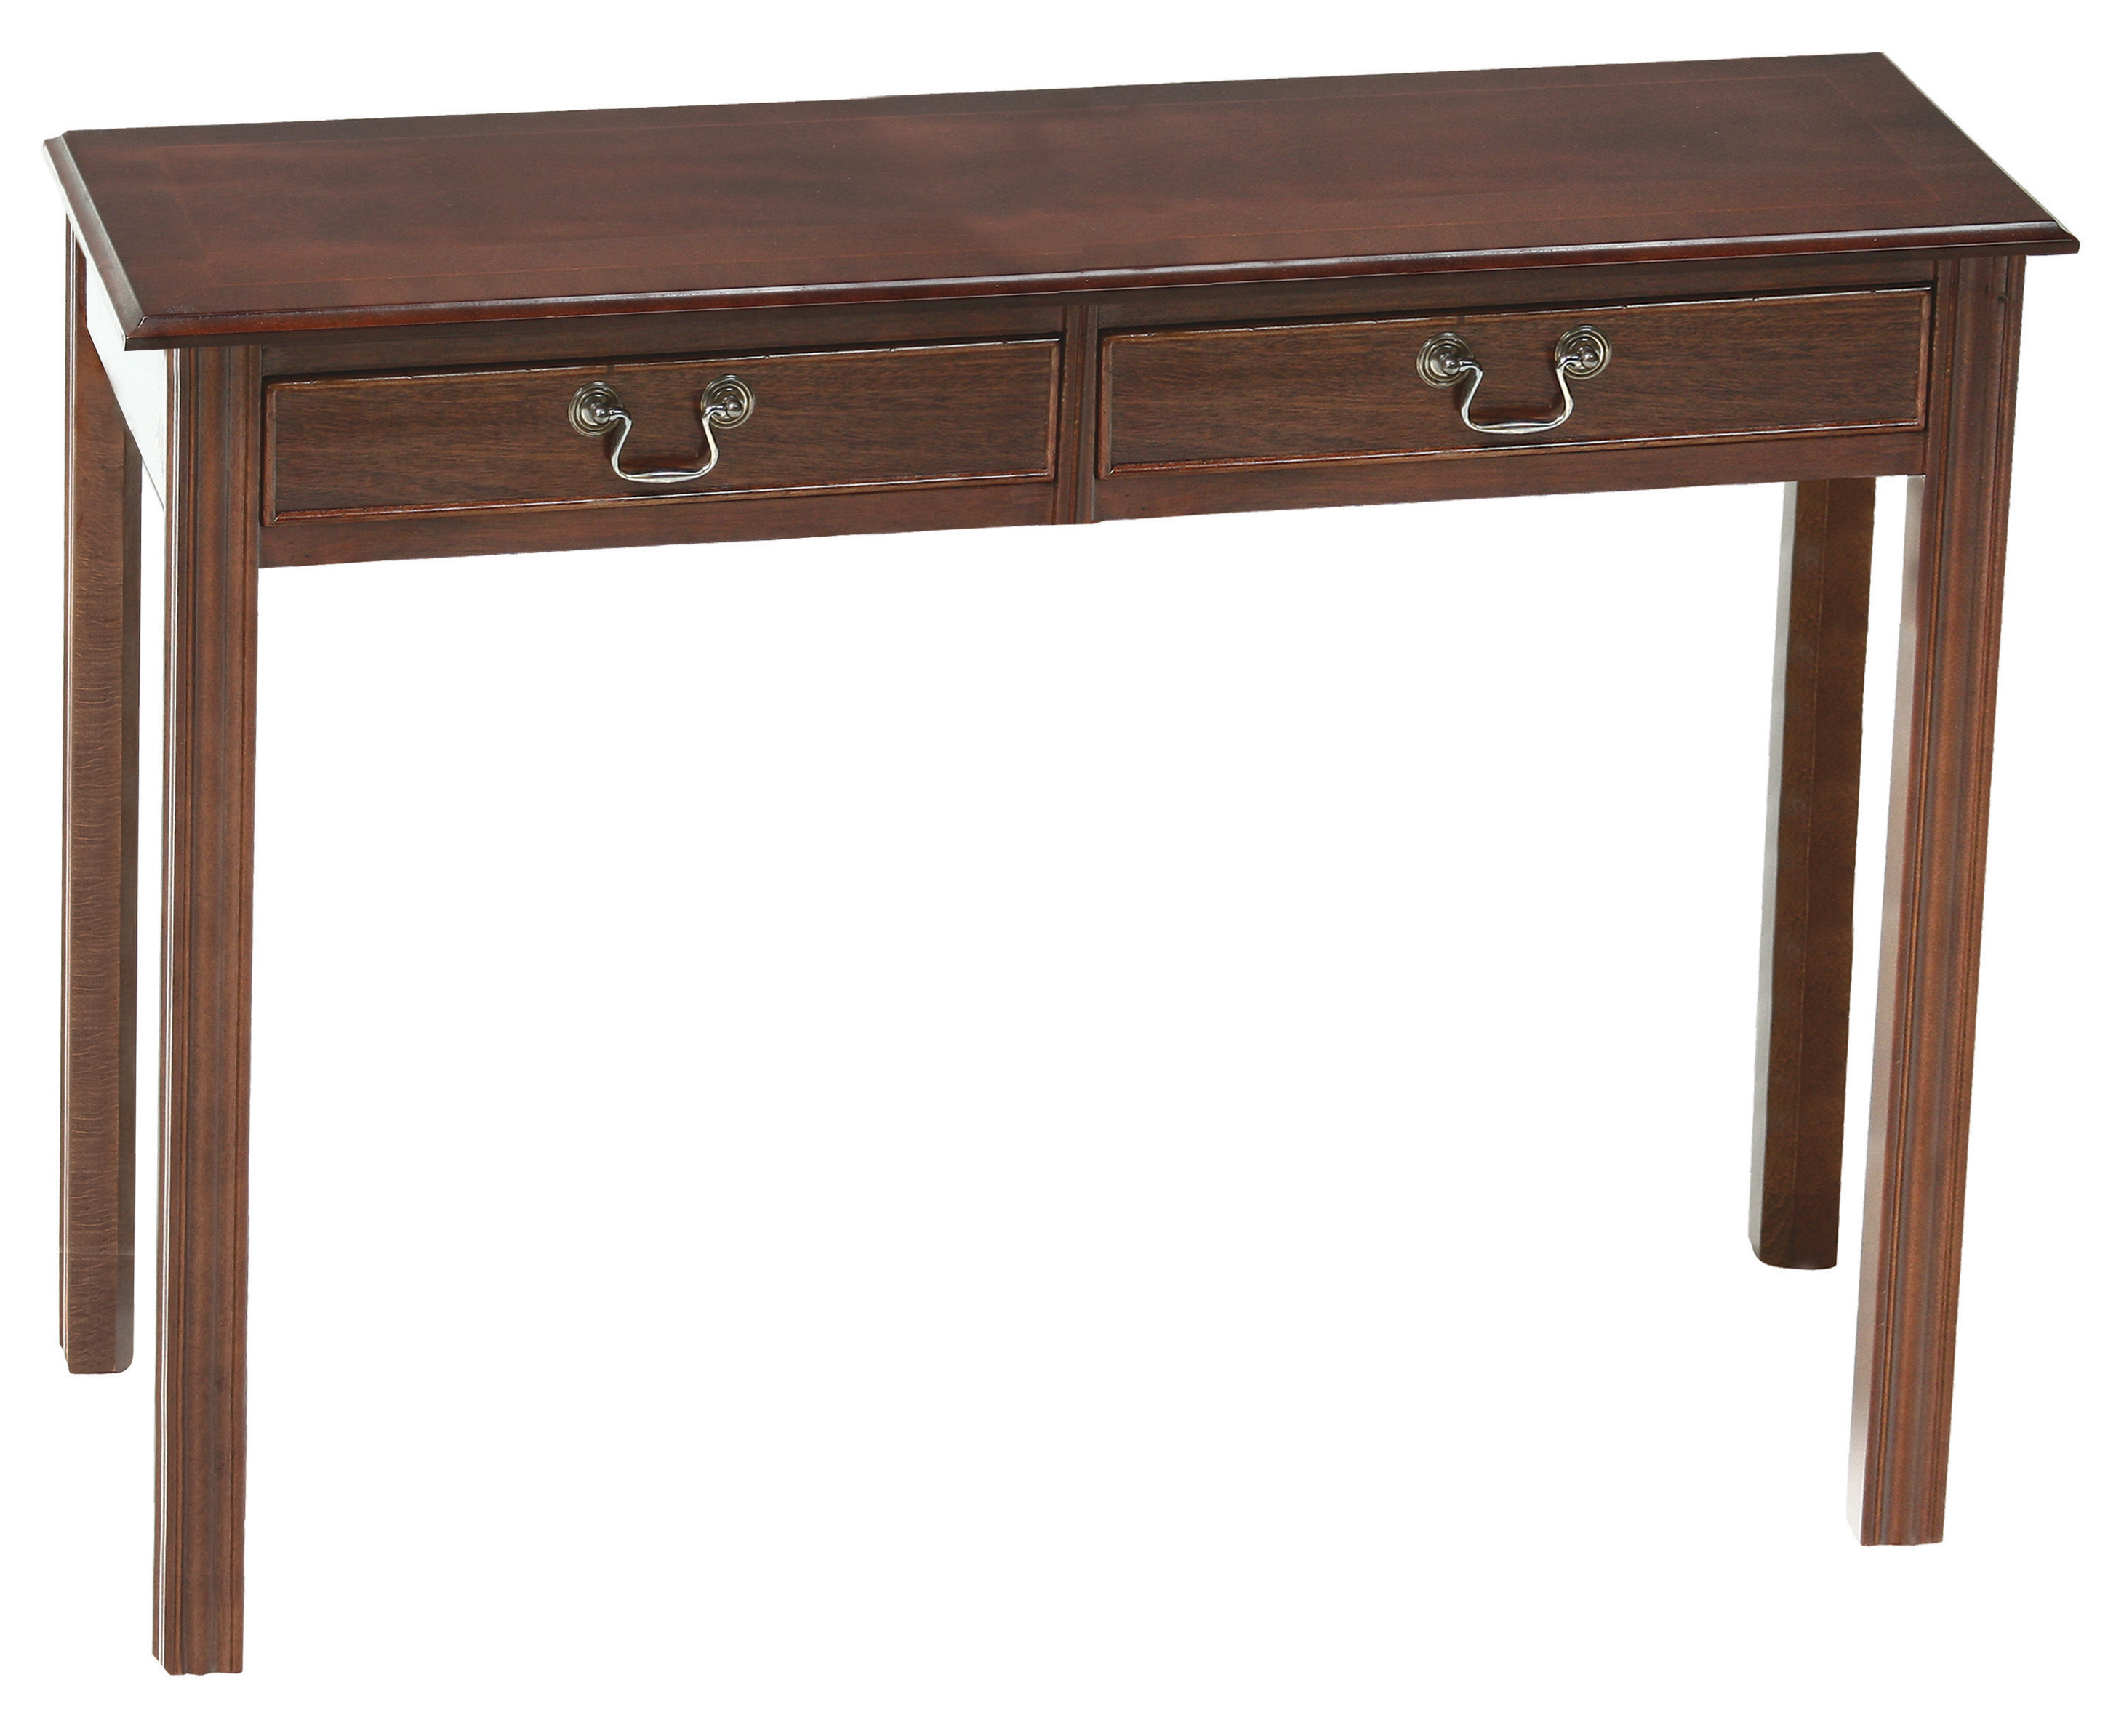 Id F 330473 further D434 Diamond Executive Furniture likewise Thomasville Mahogany Bedroom Furniture also Portfolio also The Modern Chic High Fashion Model Photography. on classic home furniture desk